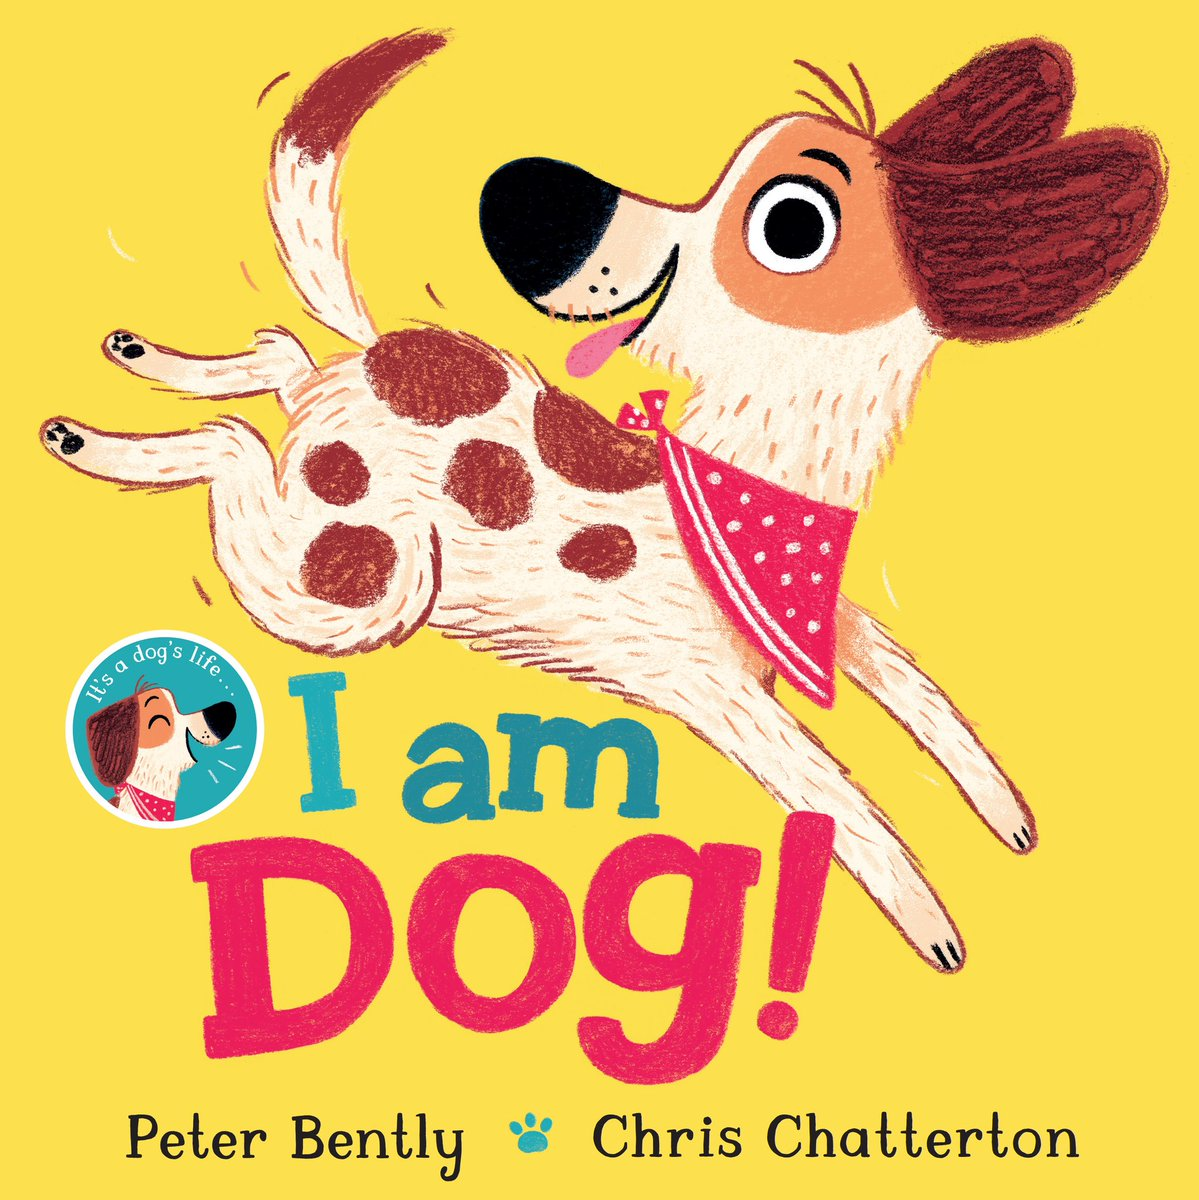 Happy Book Birthday to two top of their gamers @ChrisChatterton & @PeterBently - this book is a joy to read and absorb all the glorious visual detail 🐶😍🐶 https://t.co/DQhEvkKLAG